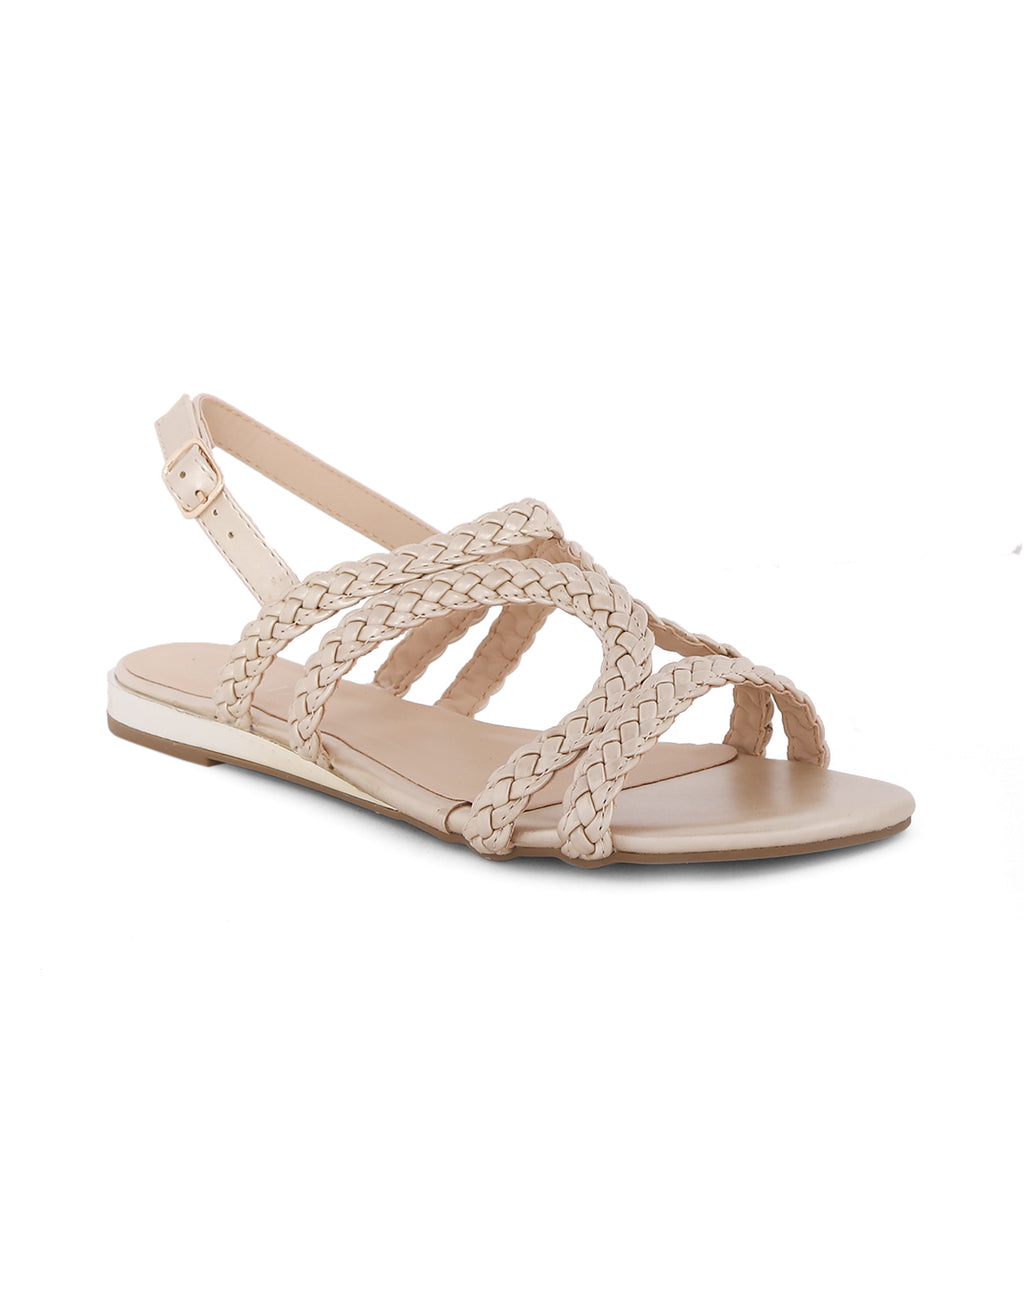 Wisteria Gold Braided Sandals